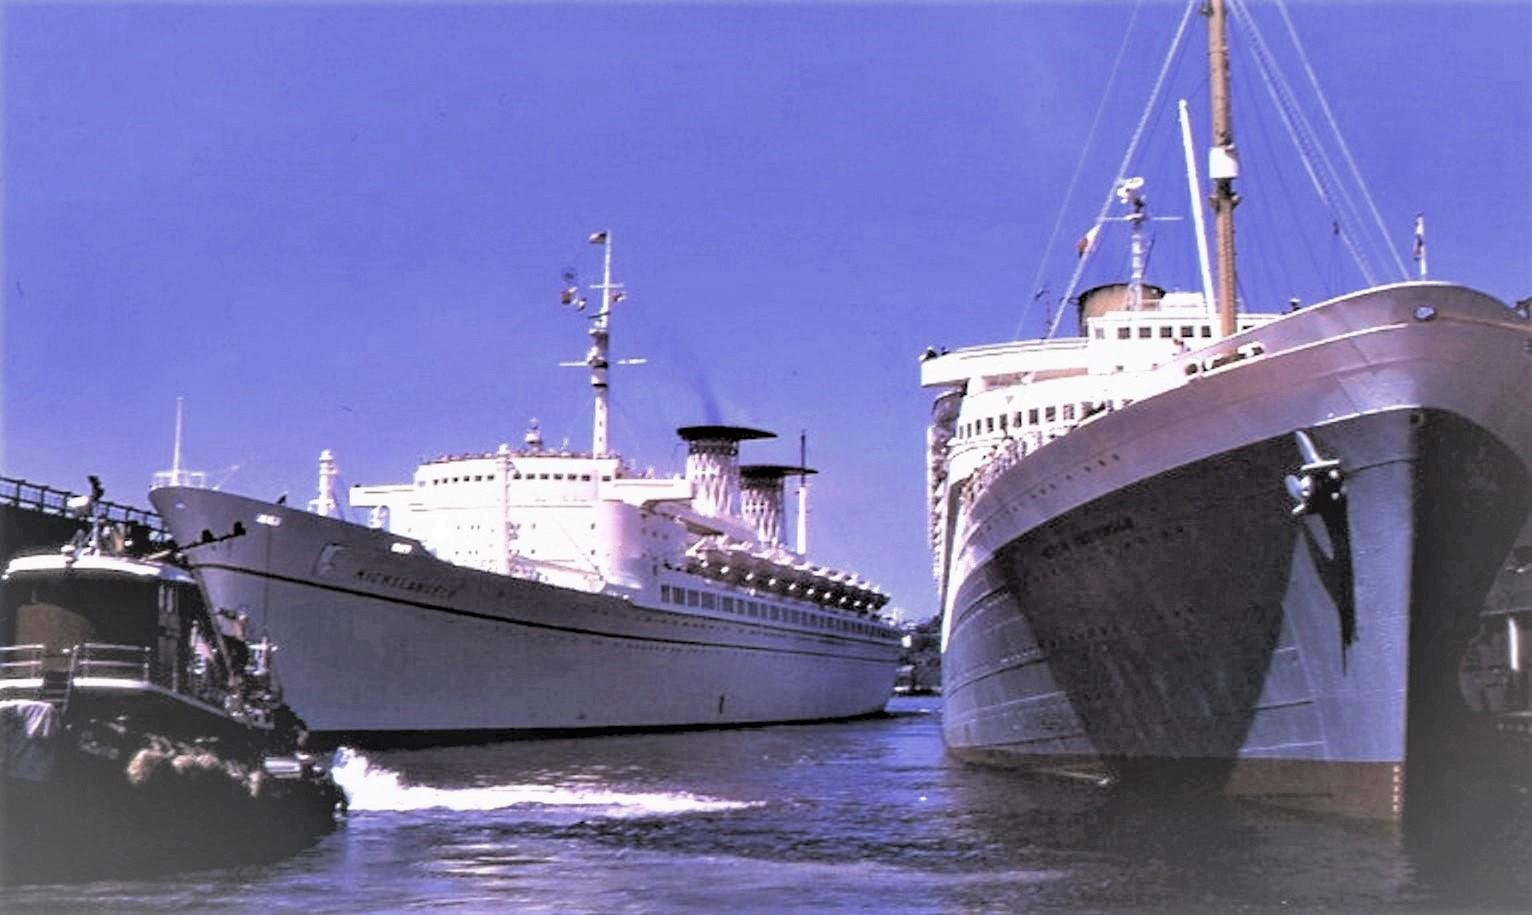 D:\Bill\Pictures\New York Liners\046.jpg